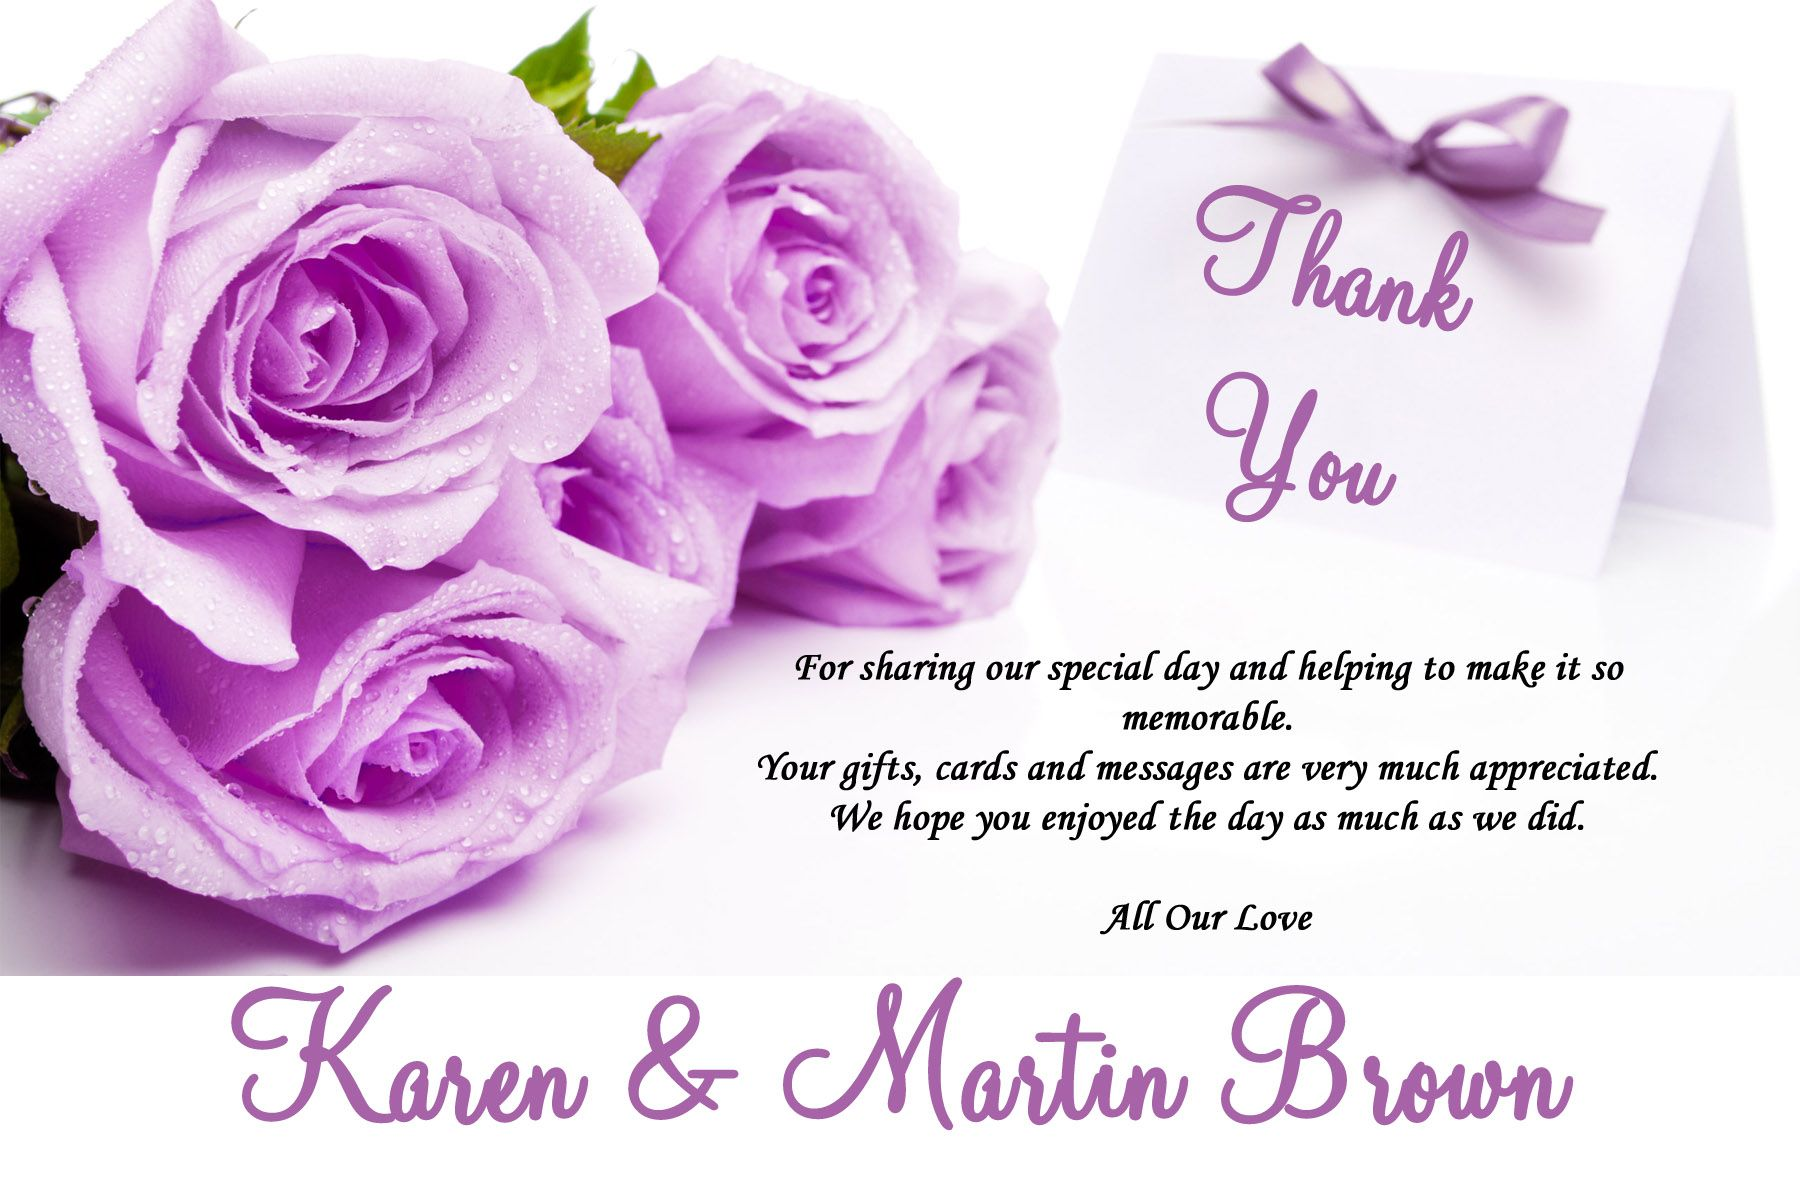 thank you cards wedding Beautiful Lilac Purple Rose Personalised Wedding by TheCardZoo Thank you card